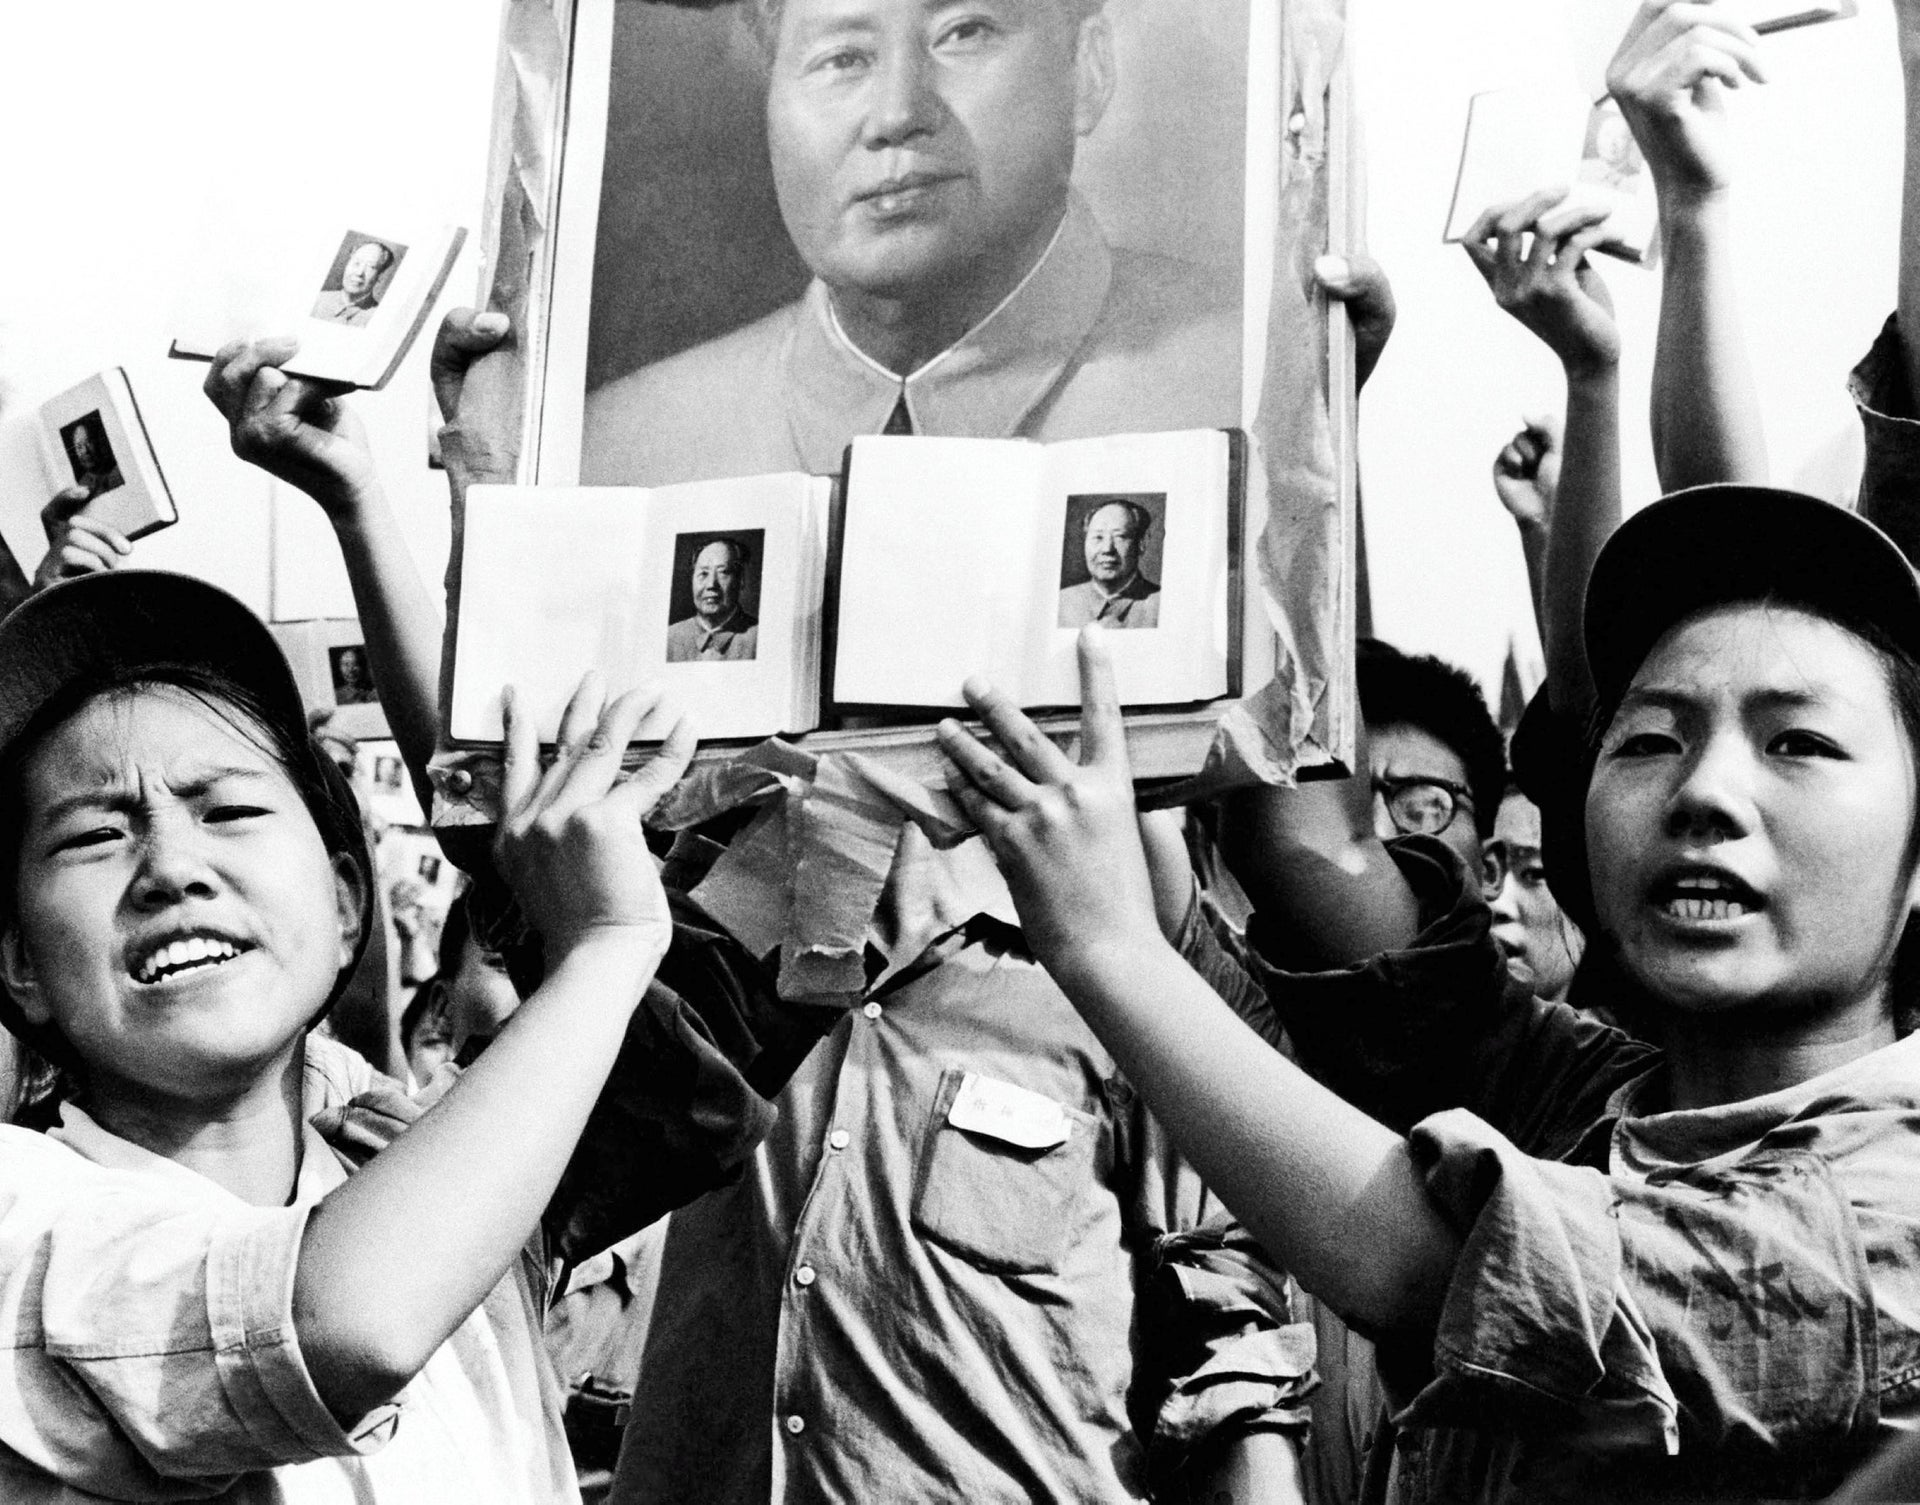 Members of the Red Guard holding up books and images of Chairman Mao Zedong, Beijing, September 14, 1966.